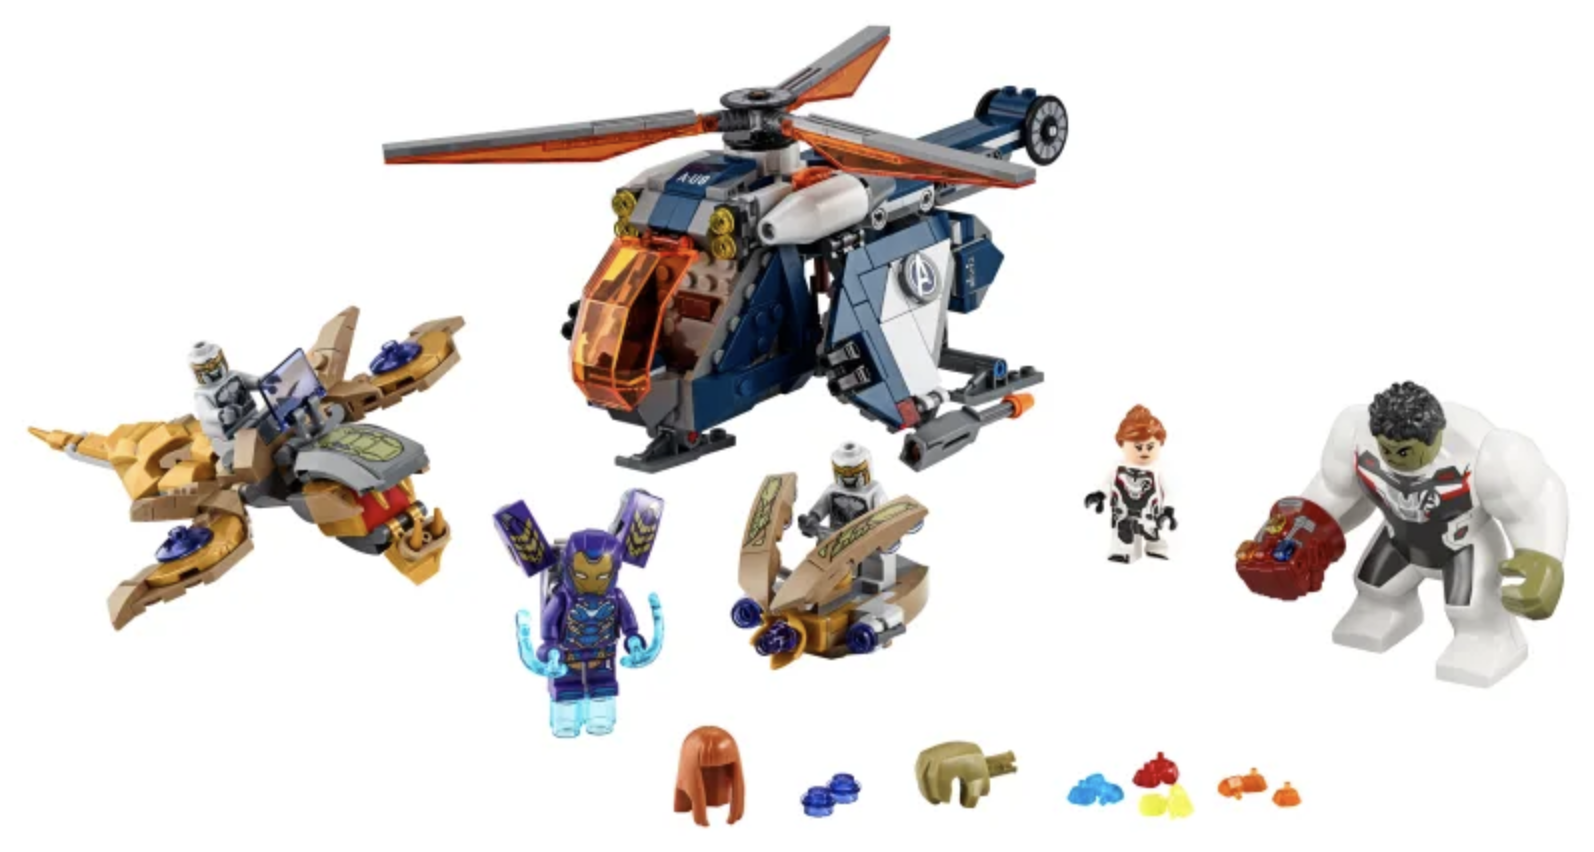 Lego sets with infinity stones: LEGO Avengers - Hulk Helicopter Drop